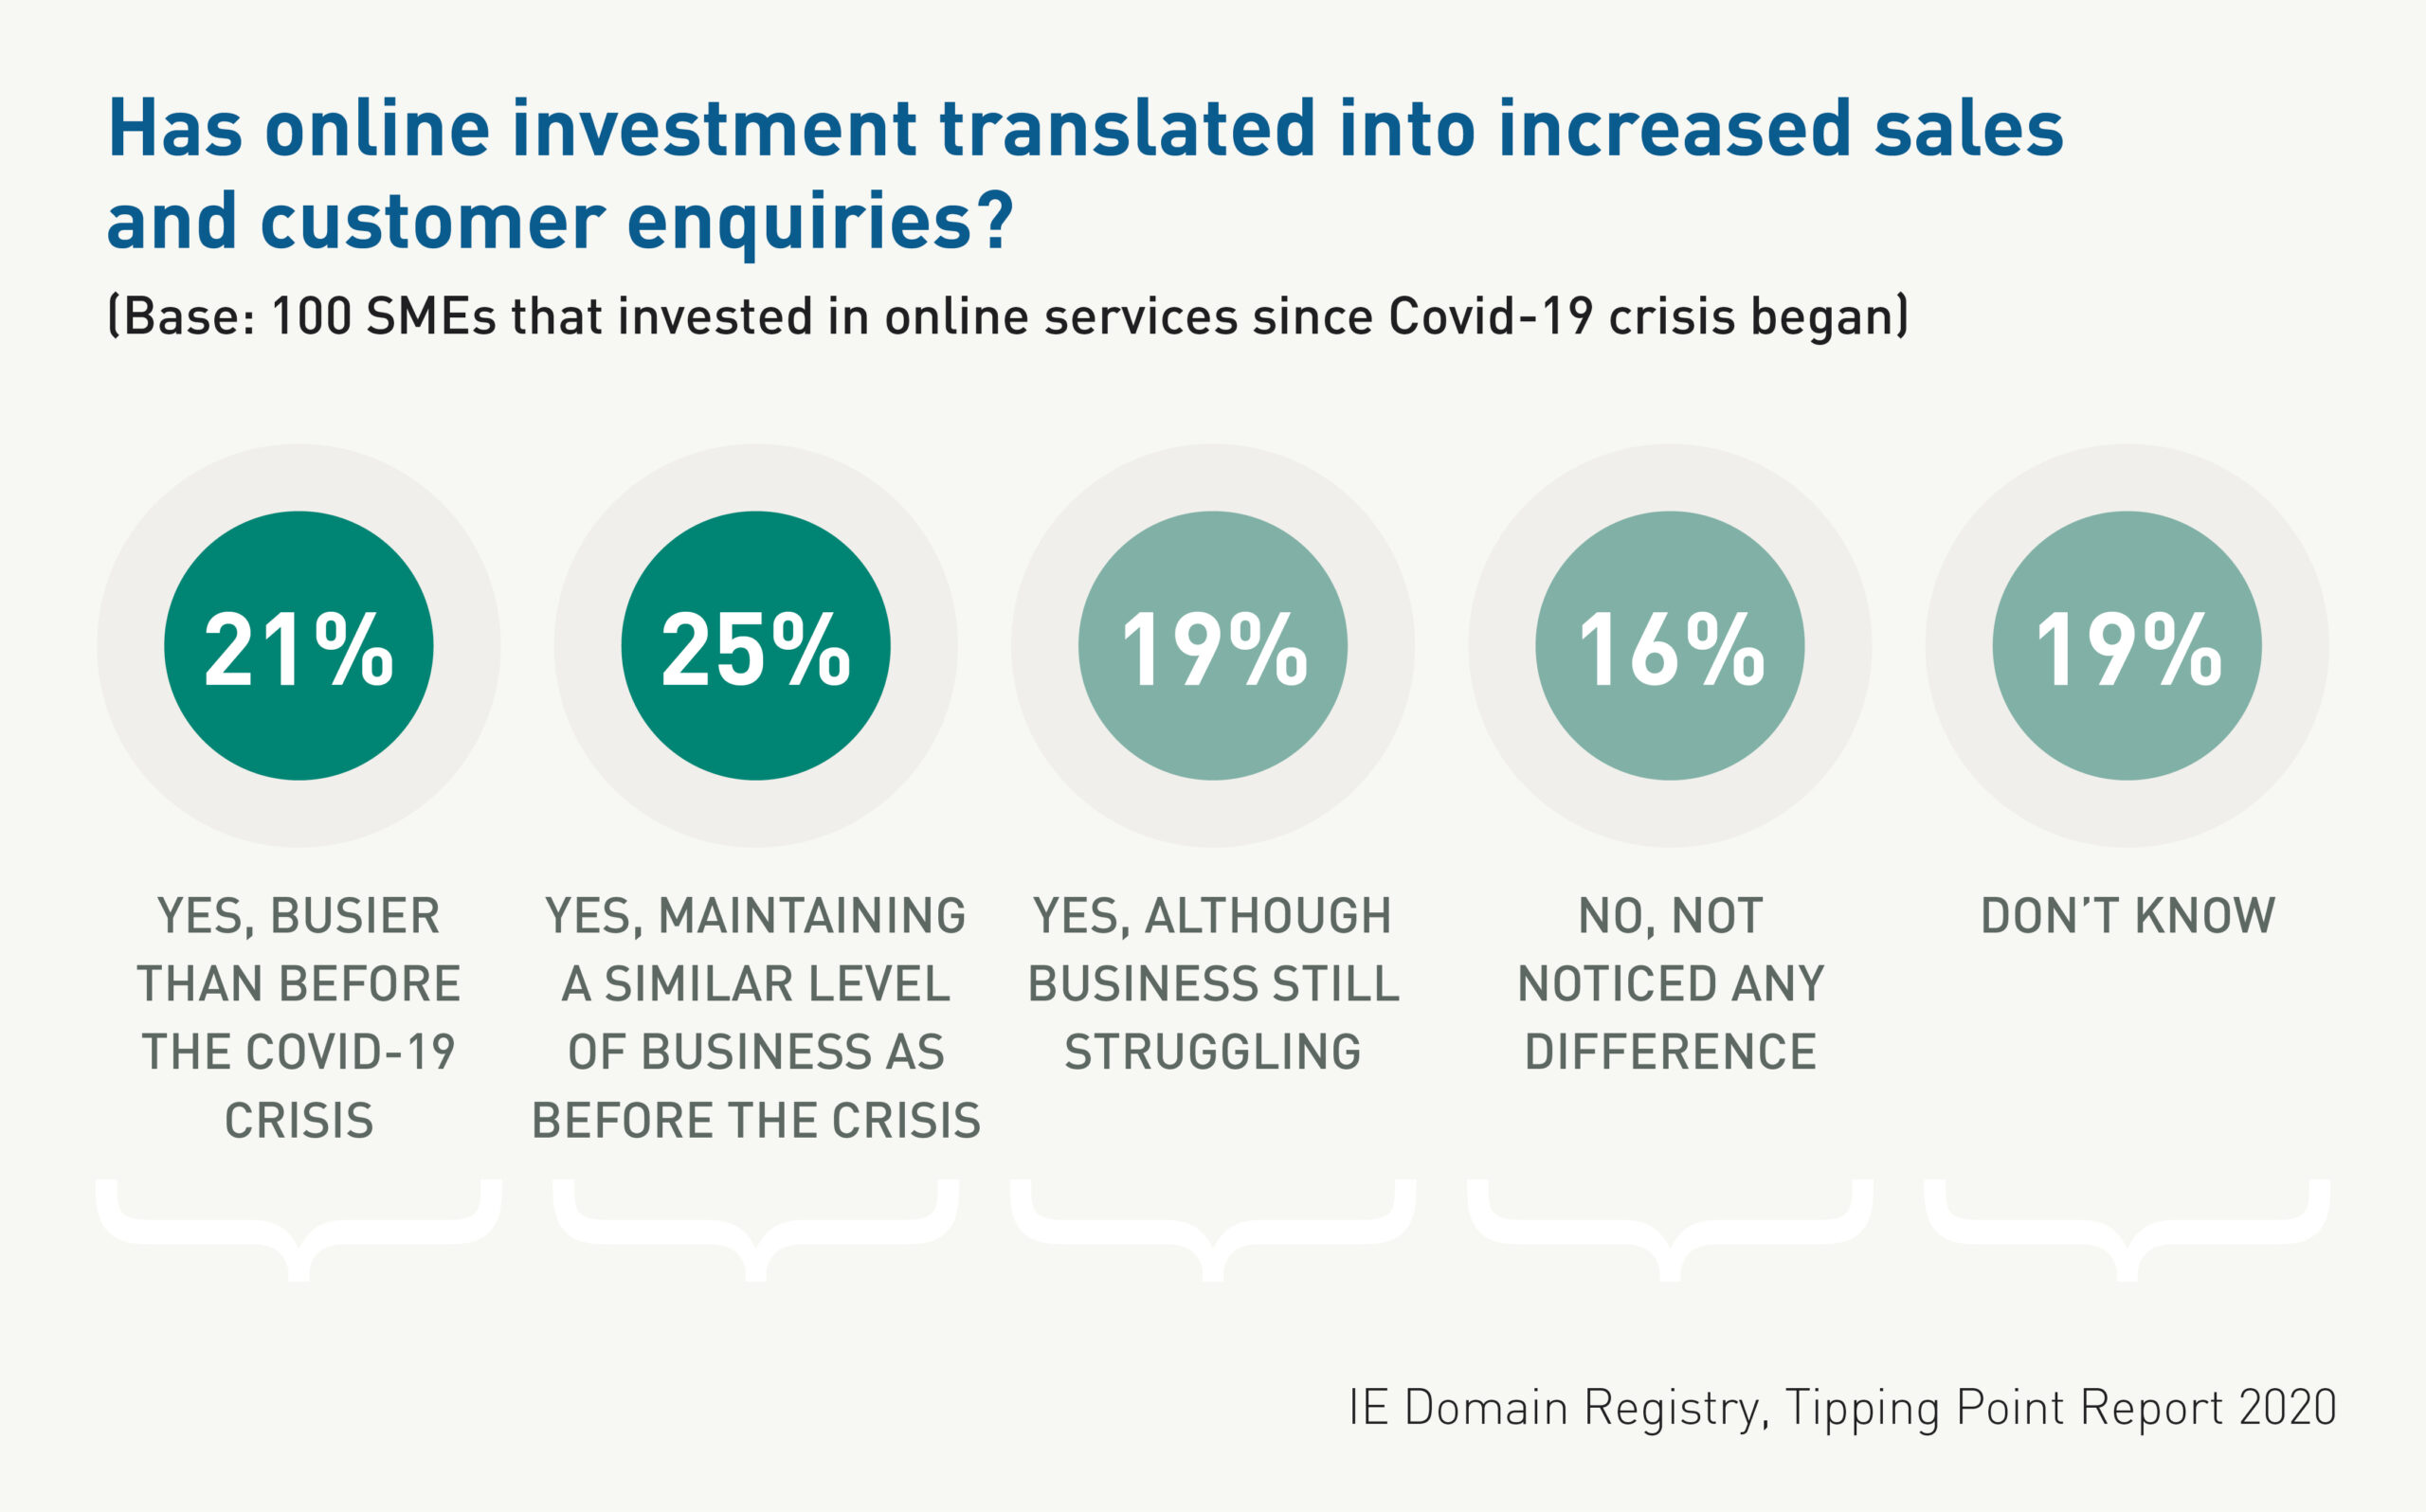 46% of SMEs that have invested in online services during the Covid-19 crisis are busier than or as busy as before.